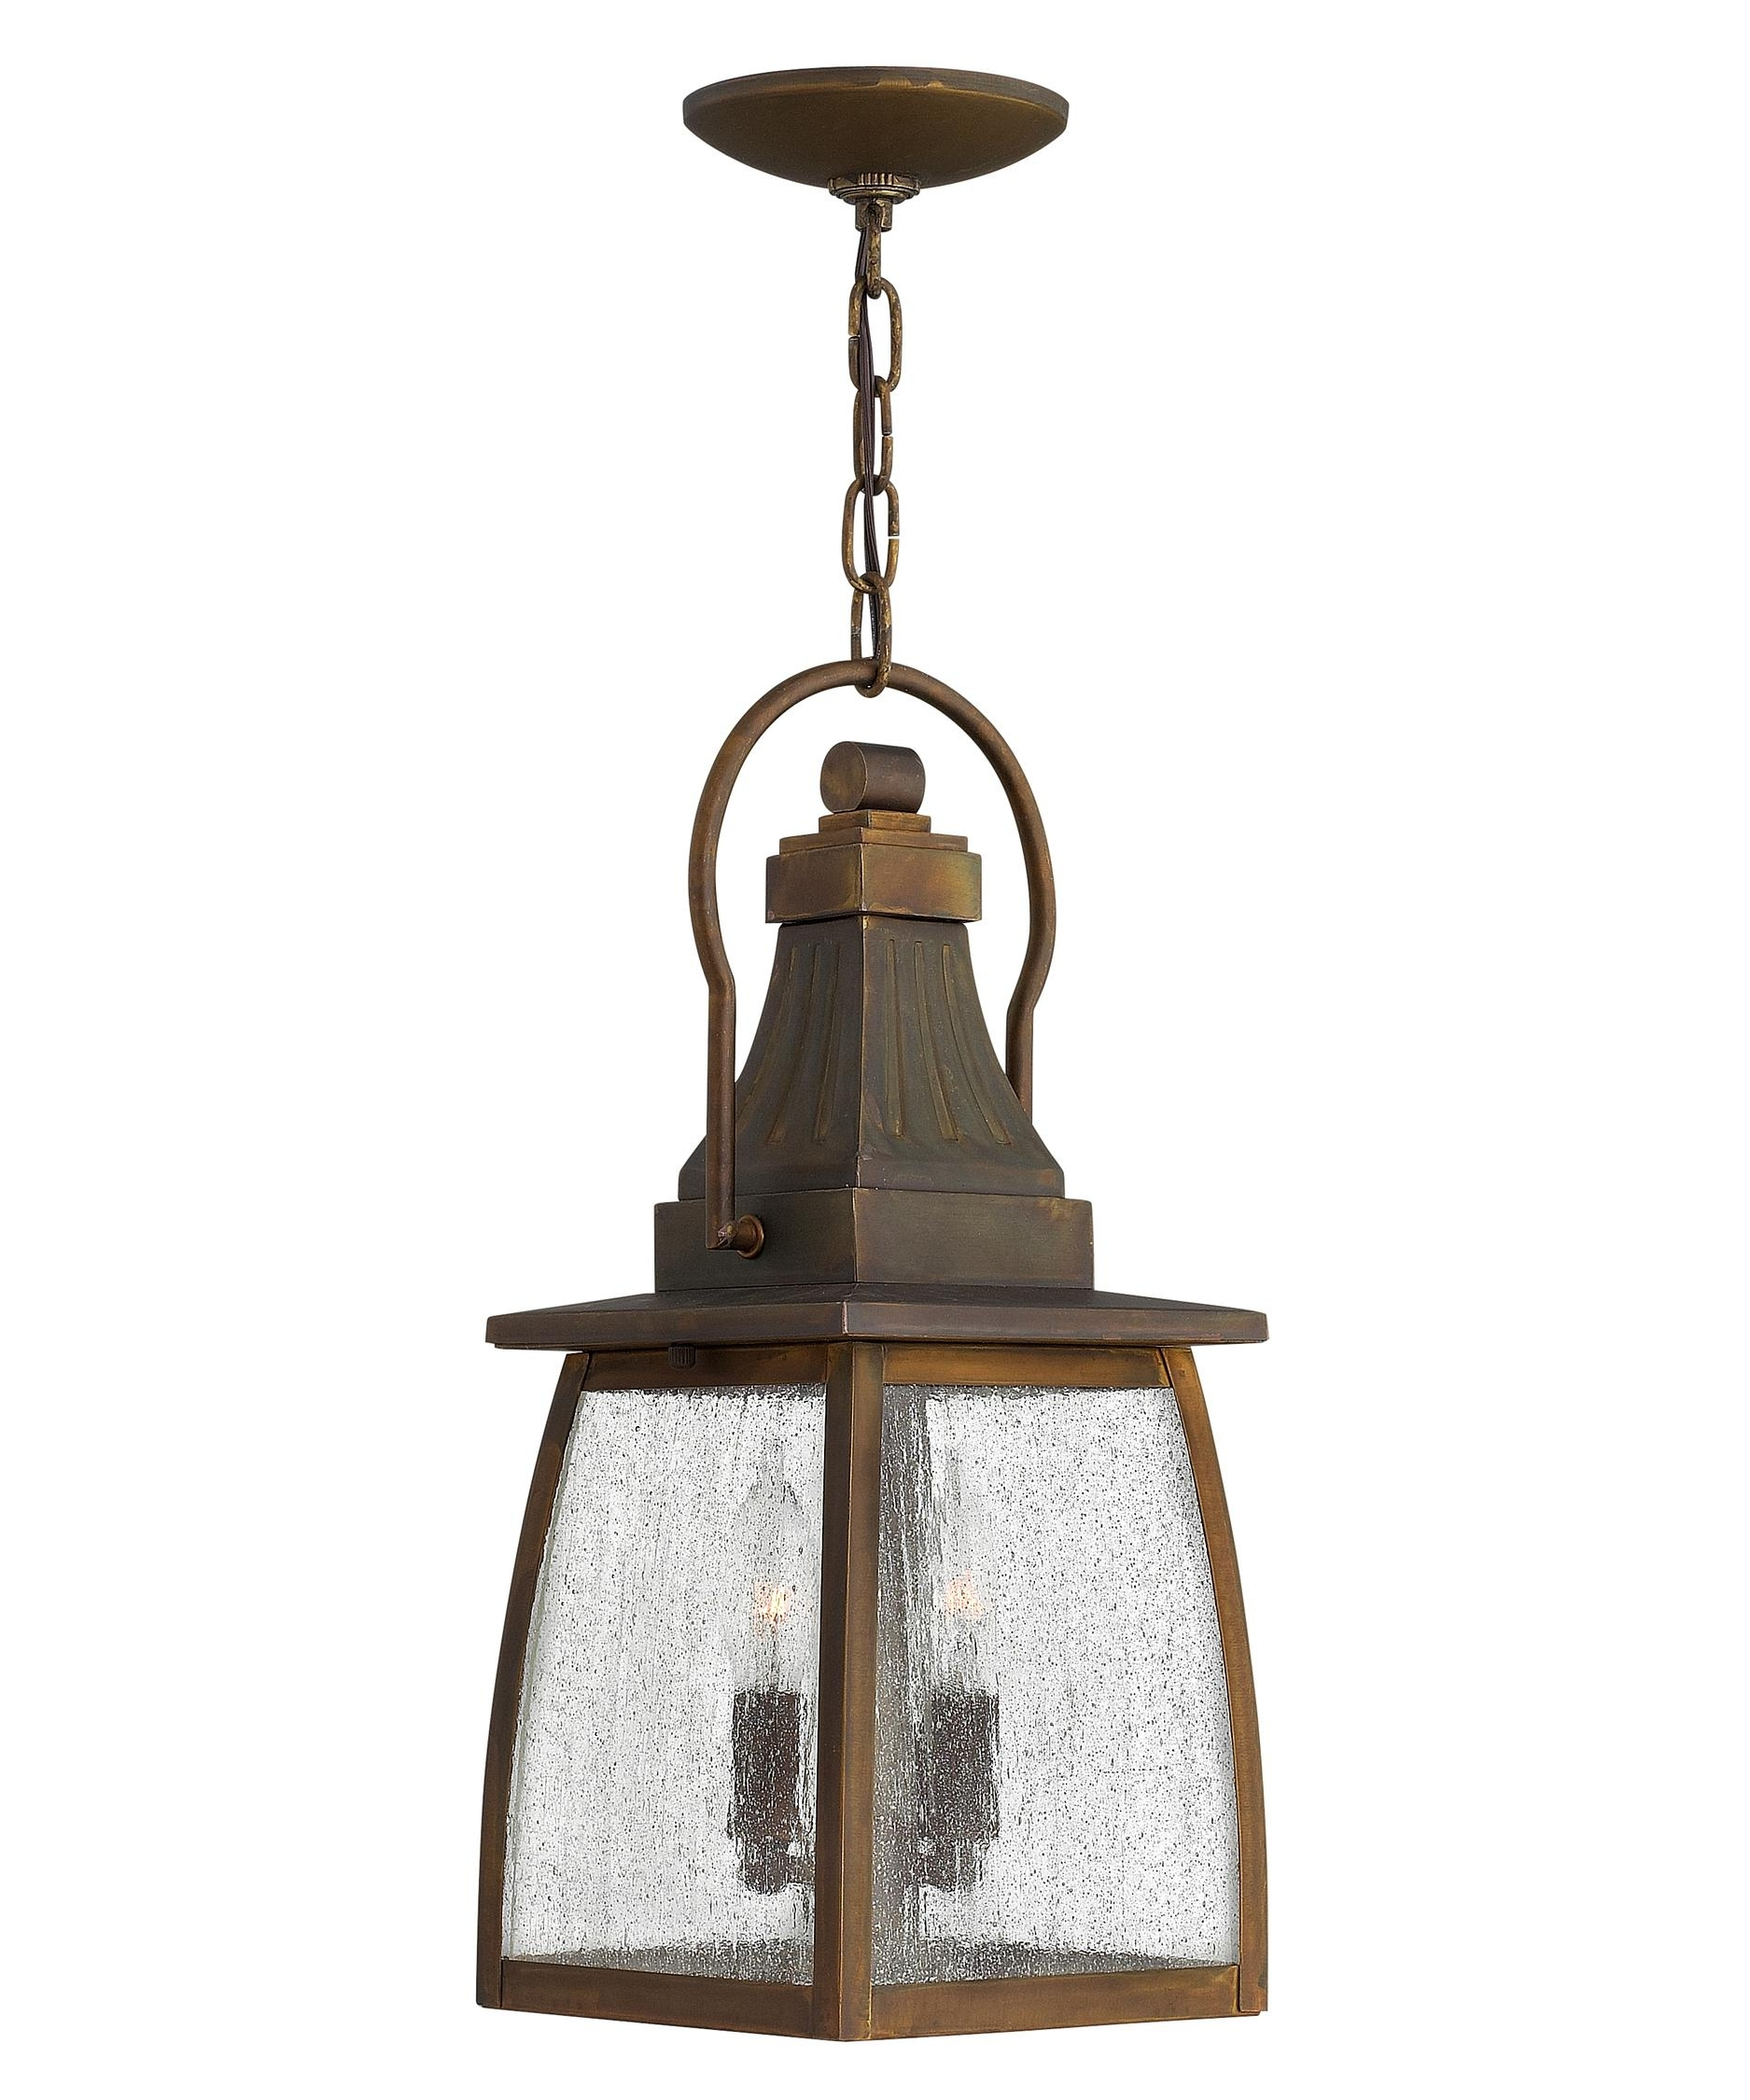 Hinkley Lighting 1202 Montauk 7 Inch Wide 2 Light Outdoor Hanging Pertaining To Well Known Contemporary Hanging Porch Hinkley Lighting (View 1 of 20)